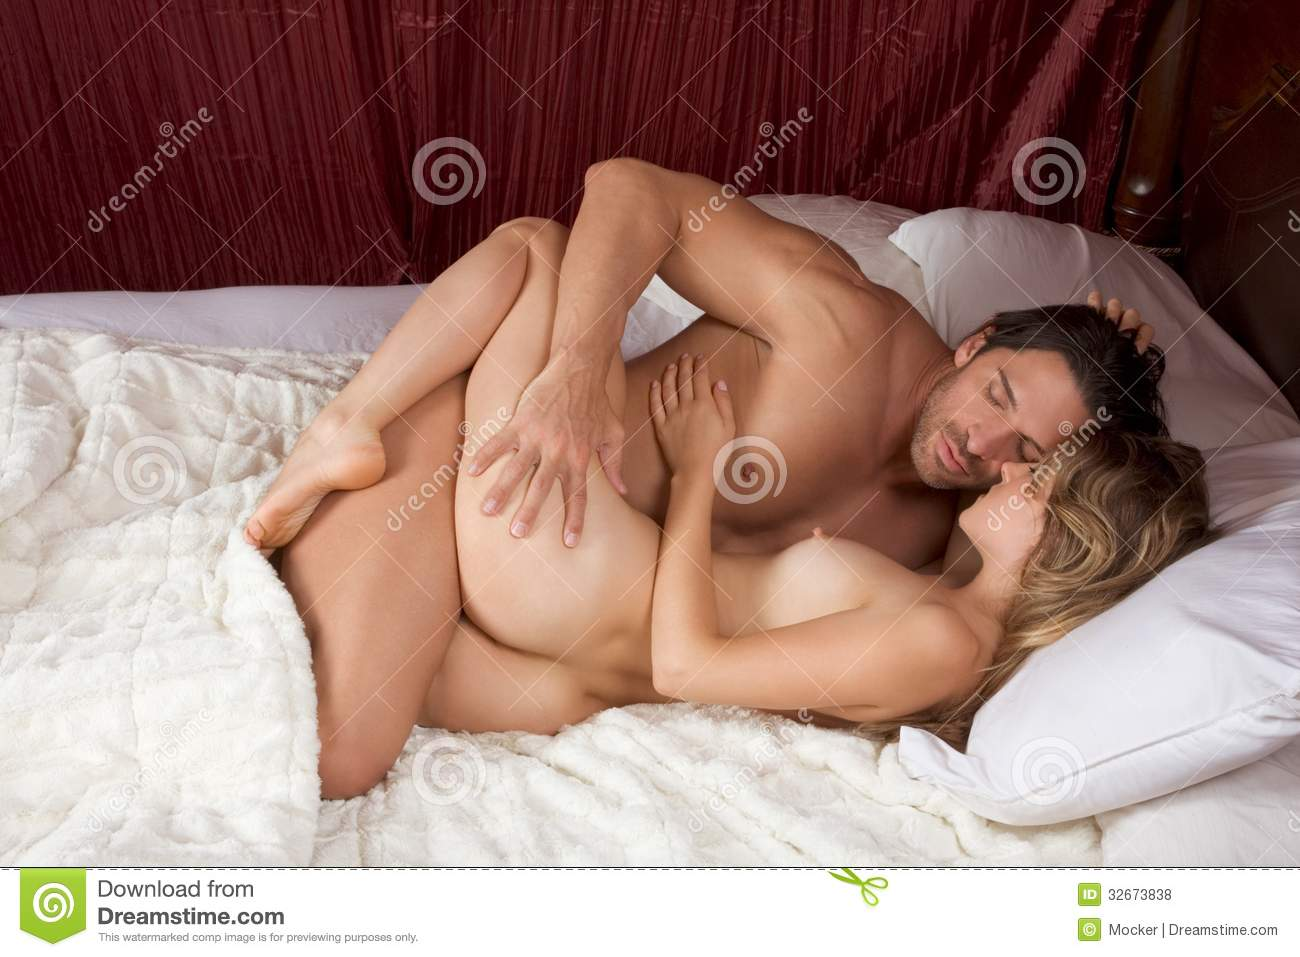 Nude couples having sex in bedroom all